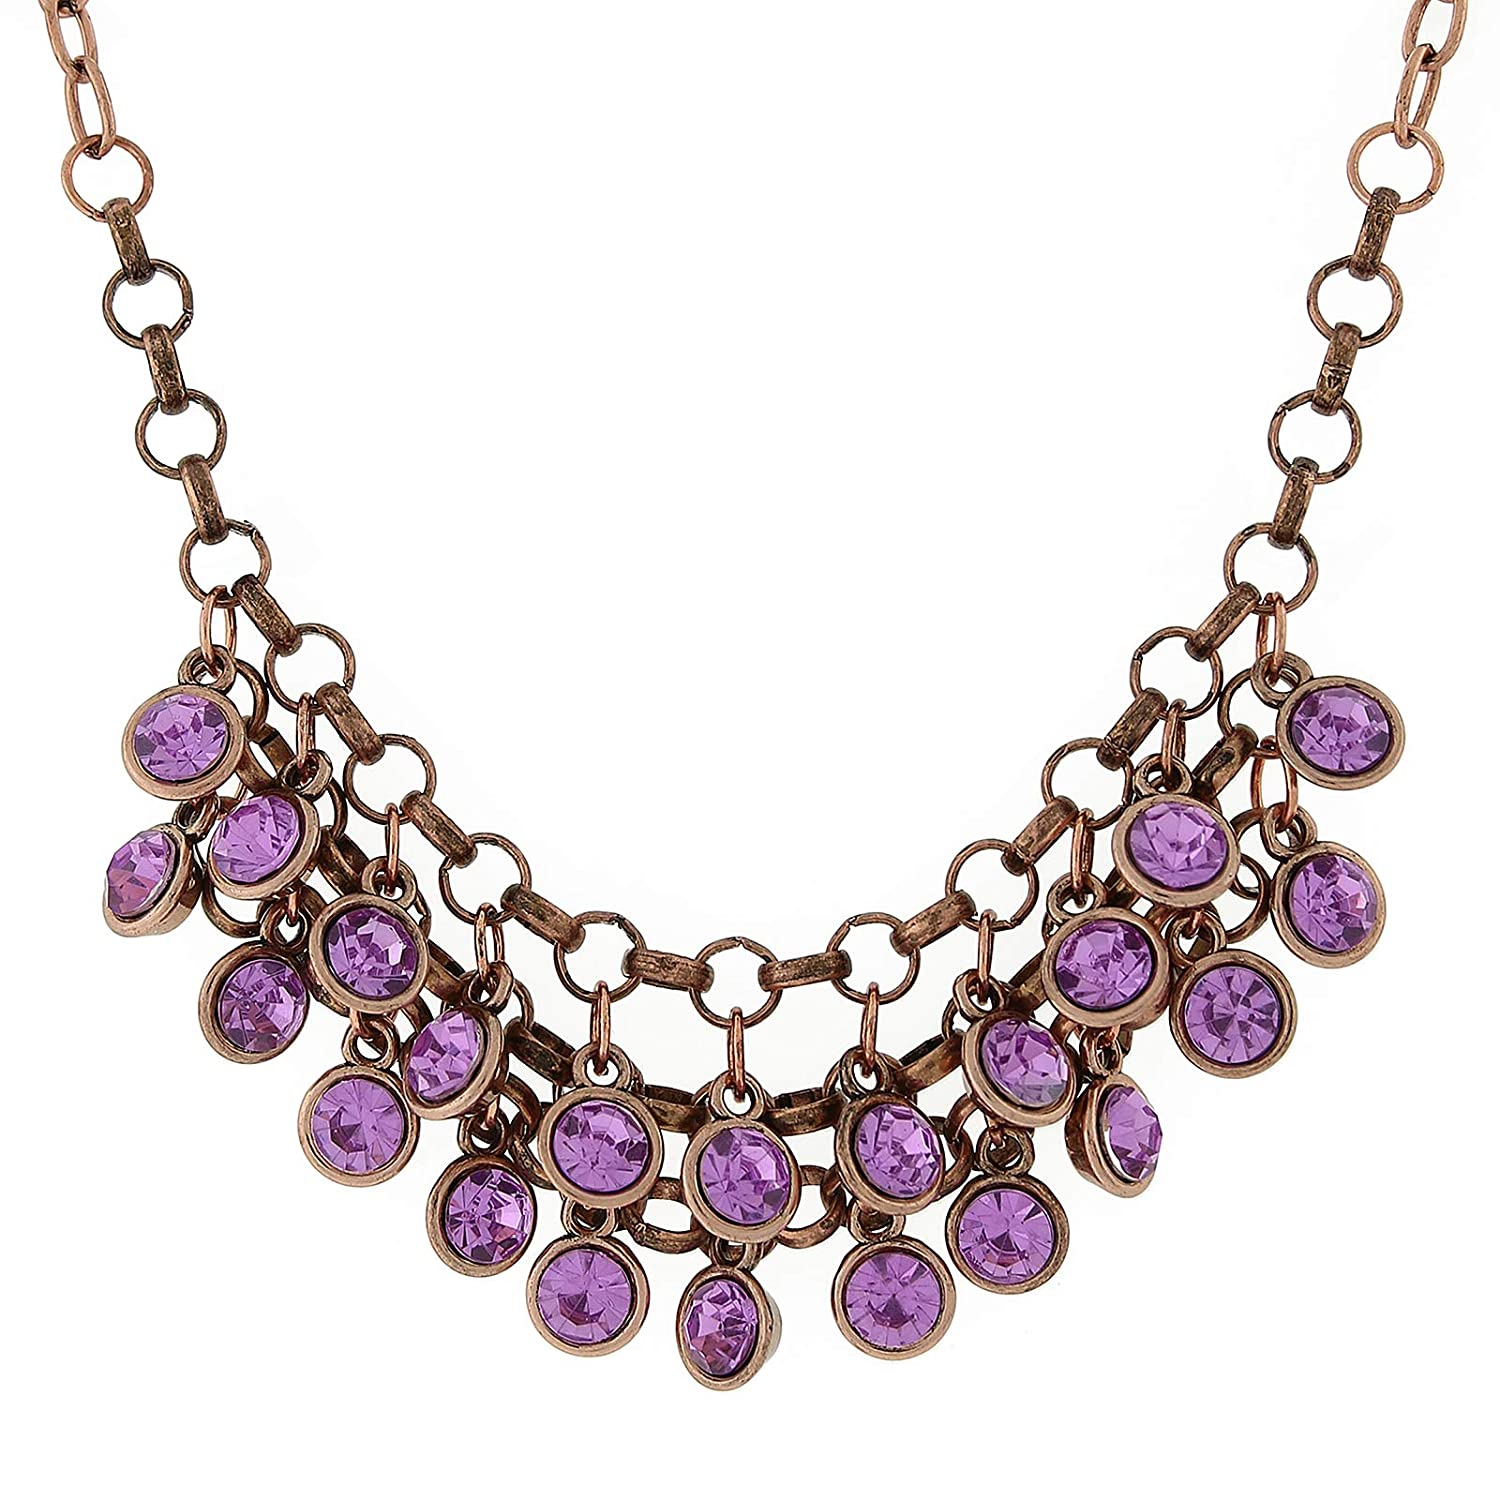 1928 Jewlery Copper-Tone Amethyst Cluster Bib Necklace 16 Adj.